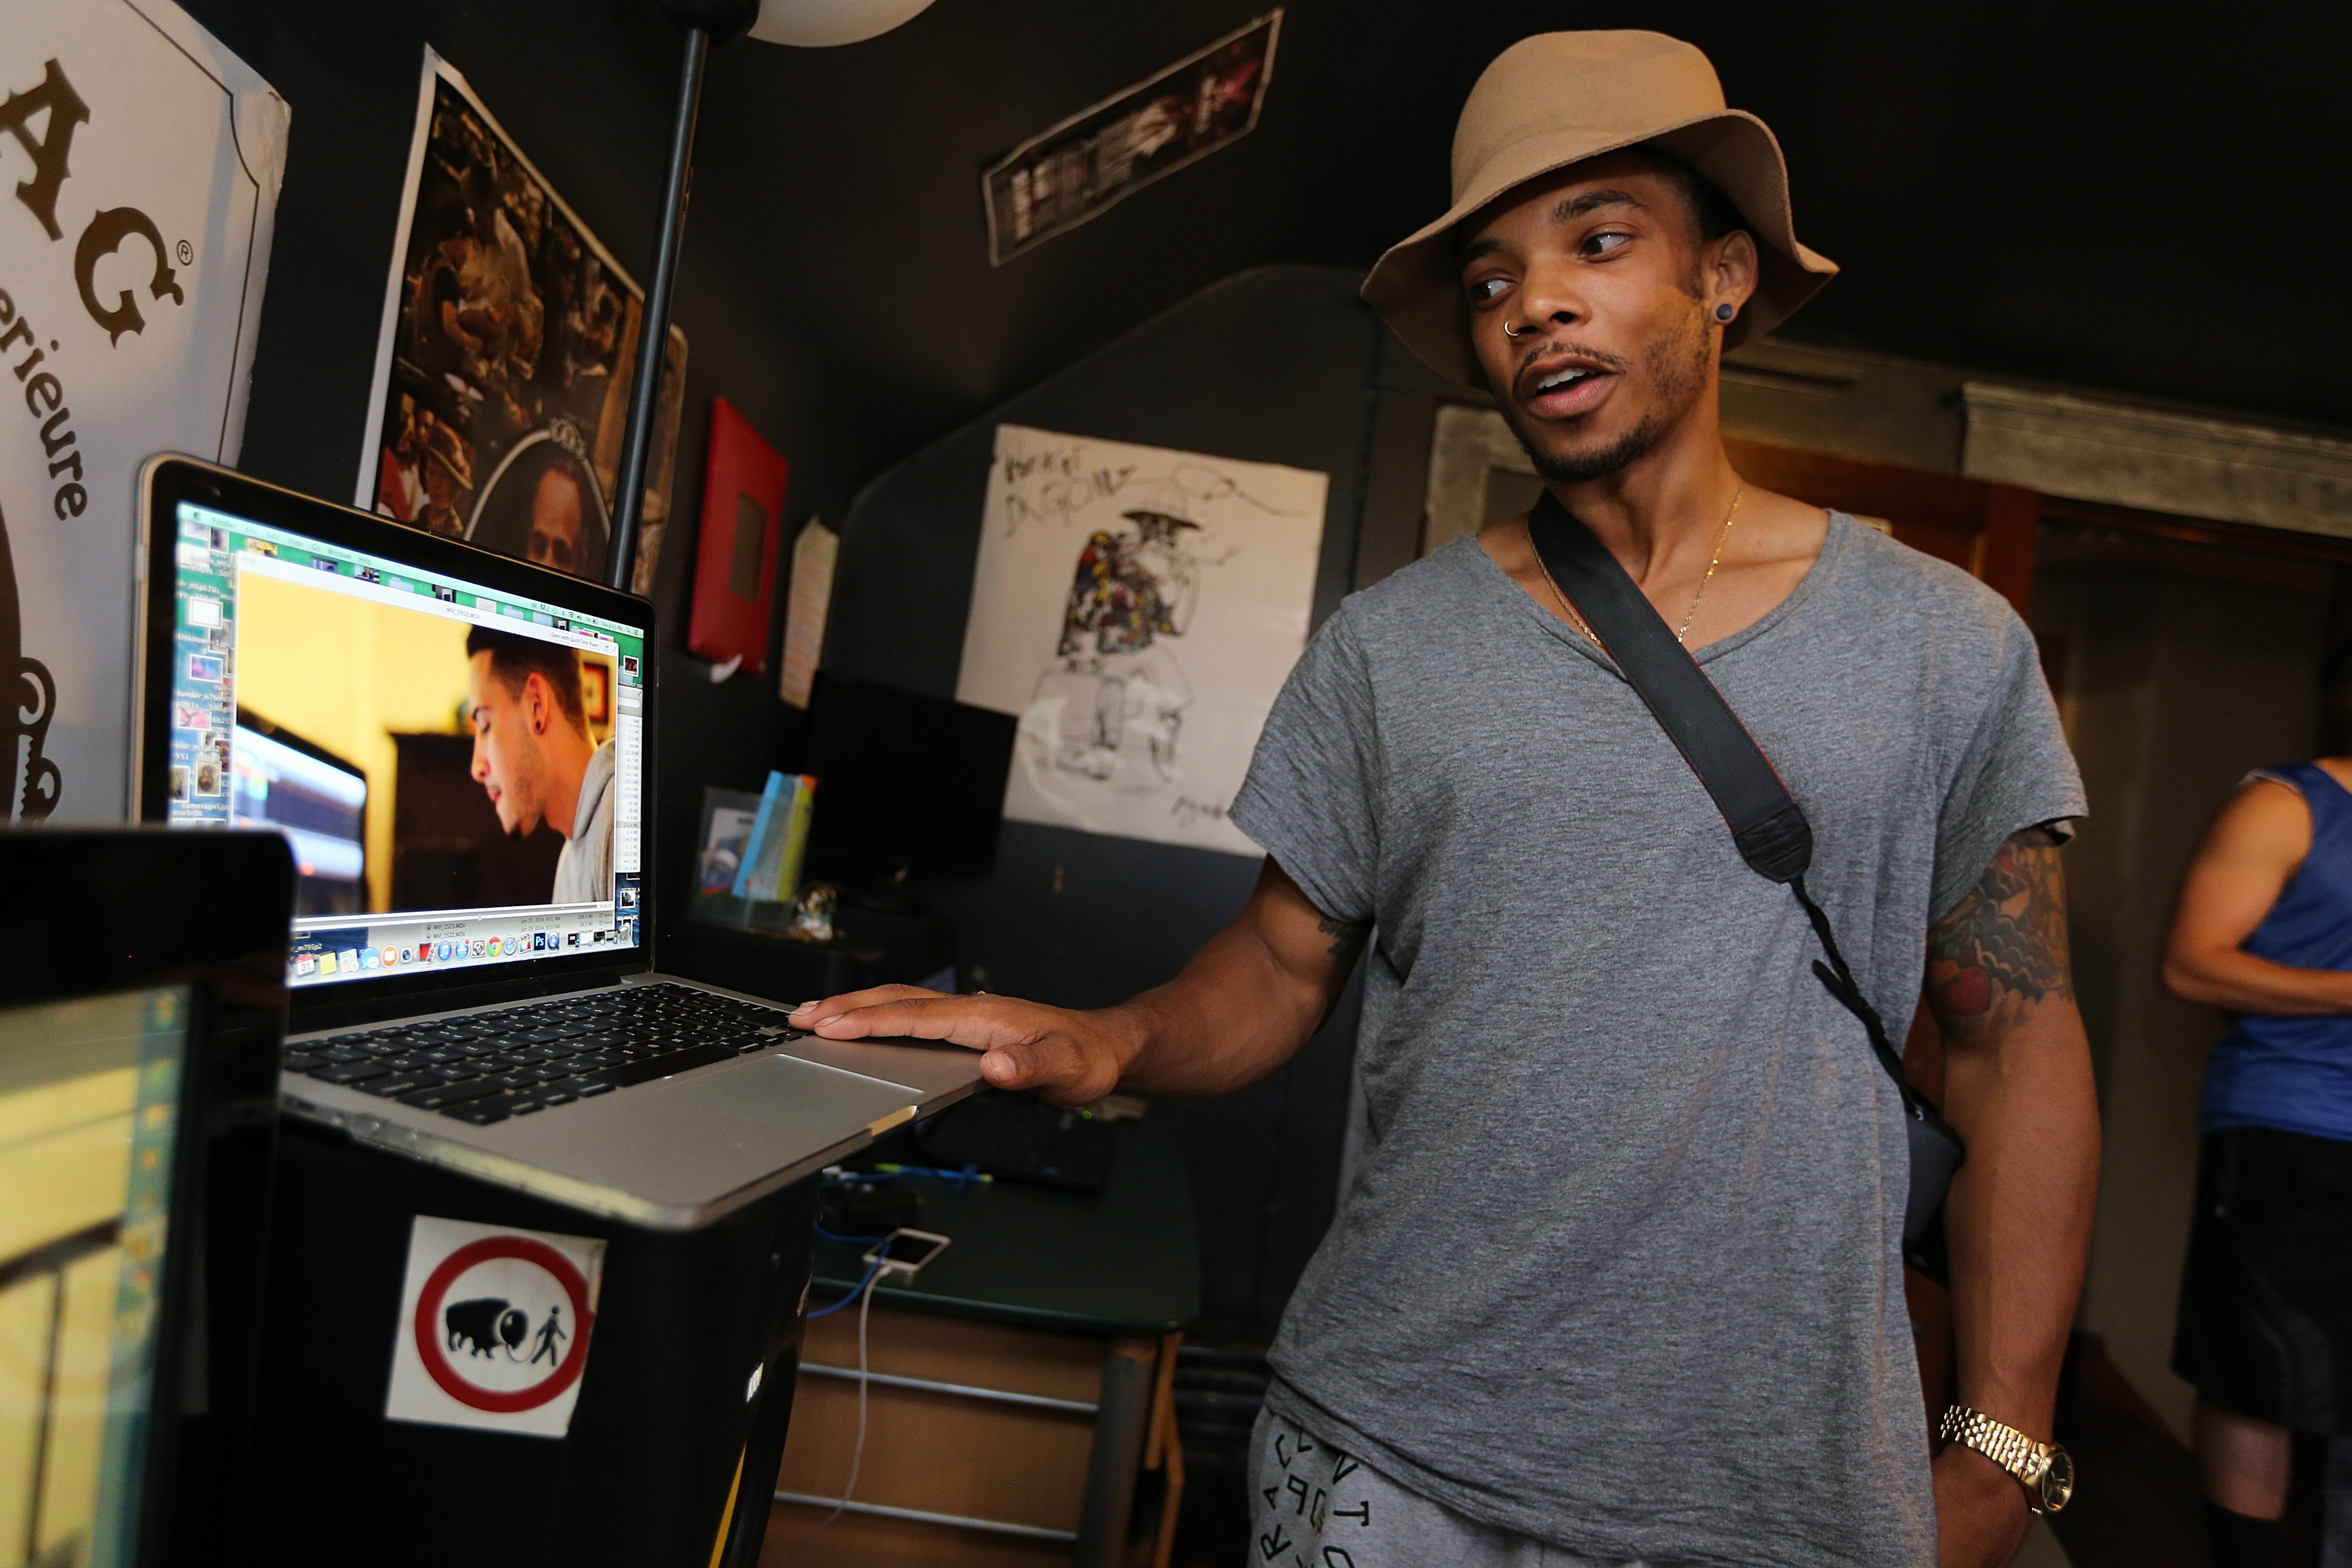 Byron Brown Jr., shown working on a video project at a friend's home in Buffalo late last month, plans to move to Los Angeles.